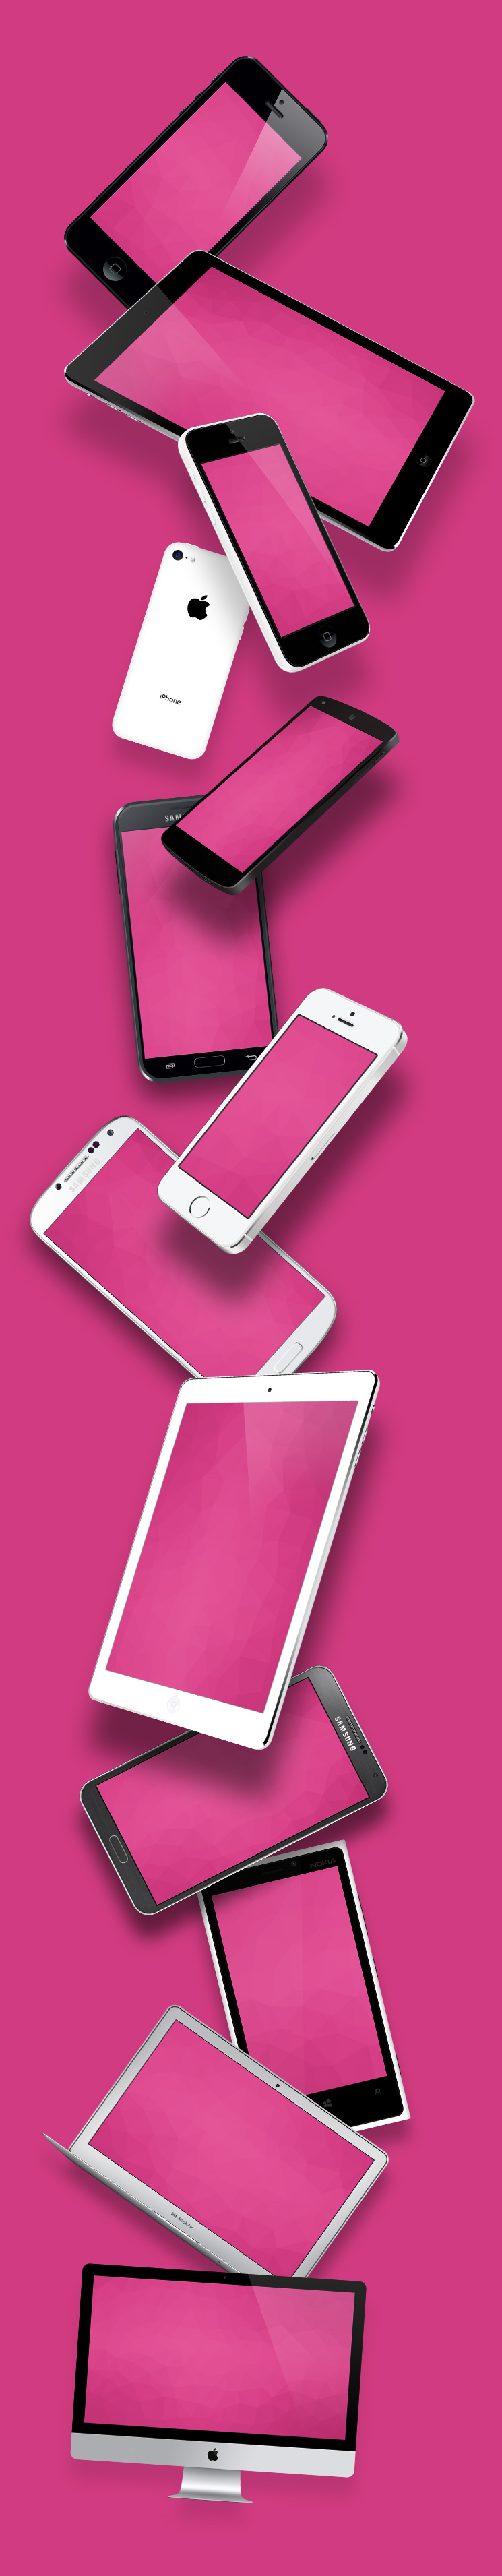 free-mobile-devices